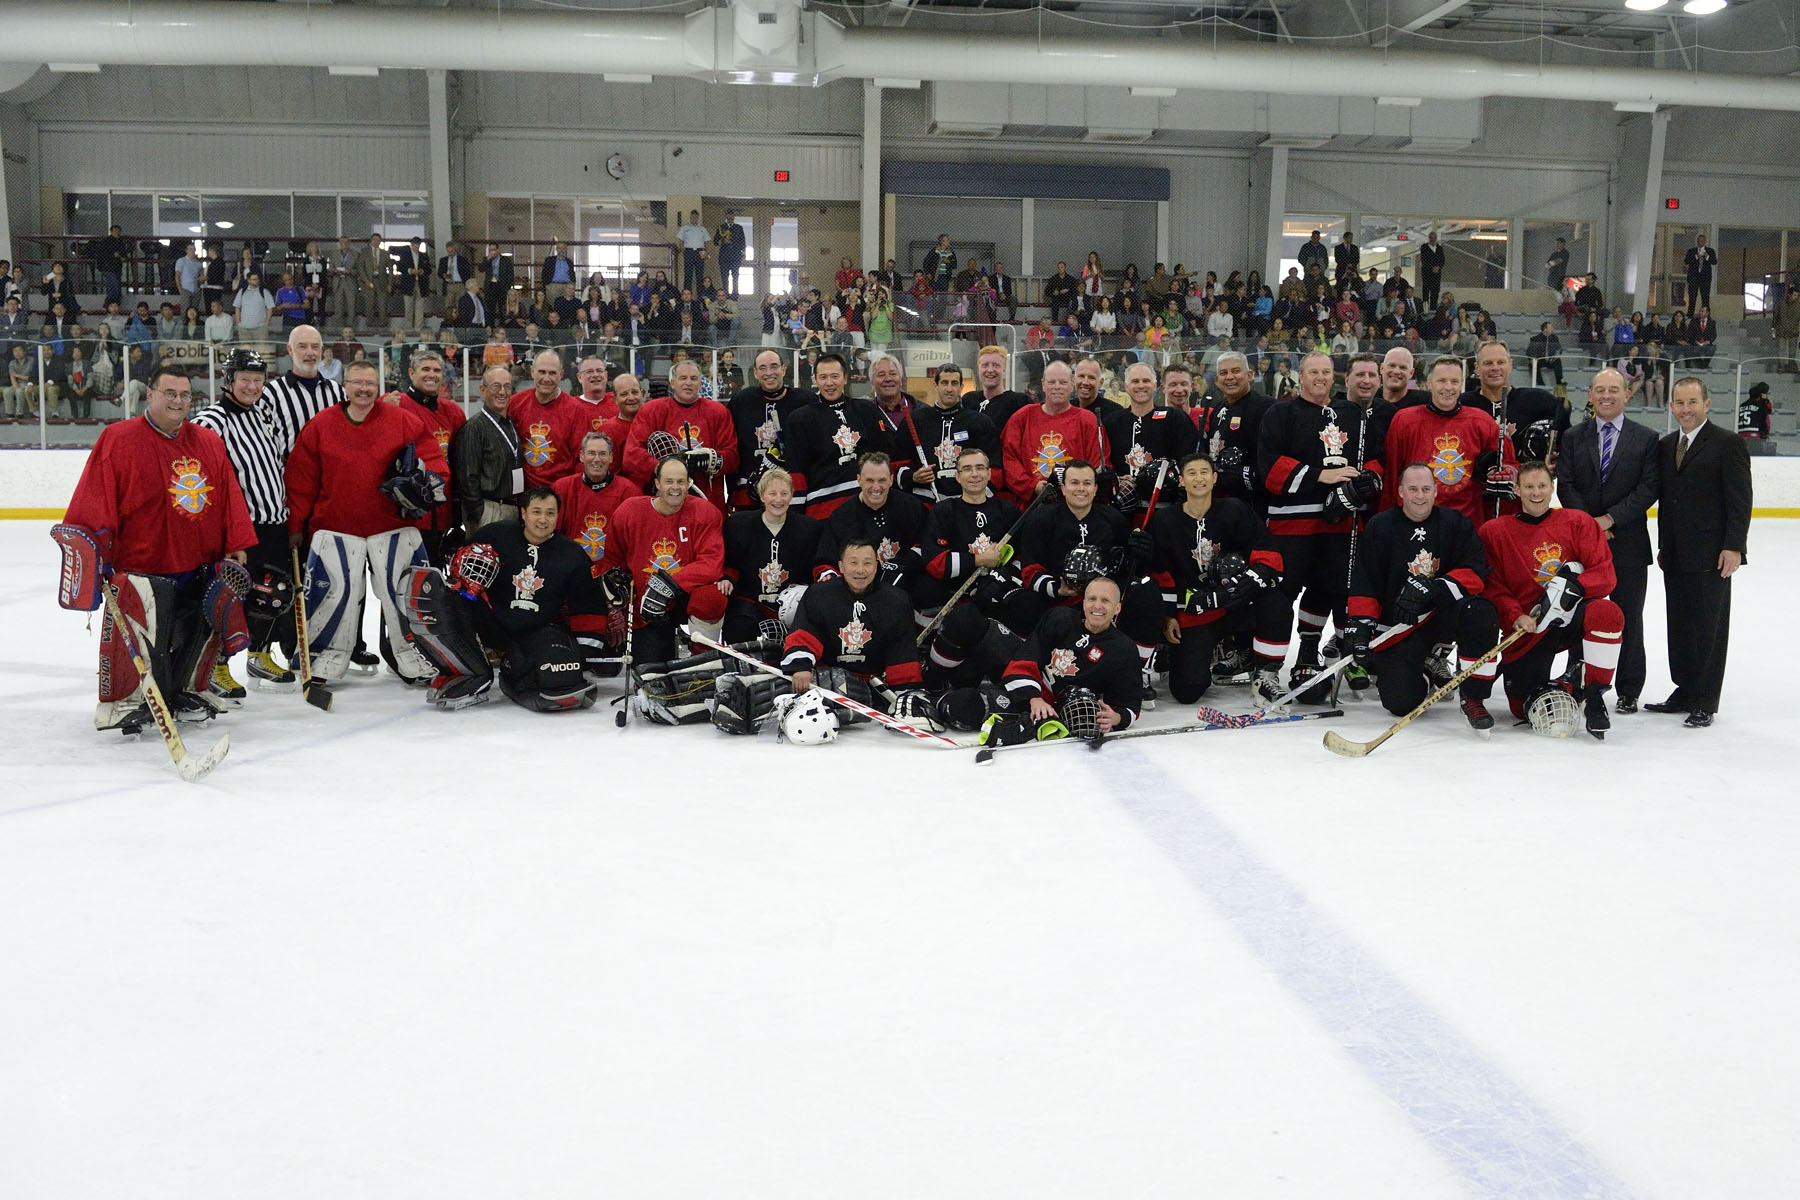 Group photo with His Excellency and players from the GOFO and the Lame Ducks teams.